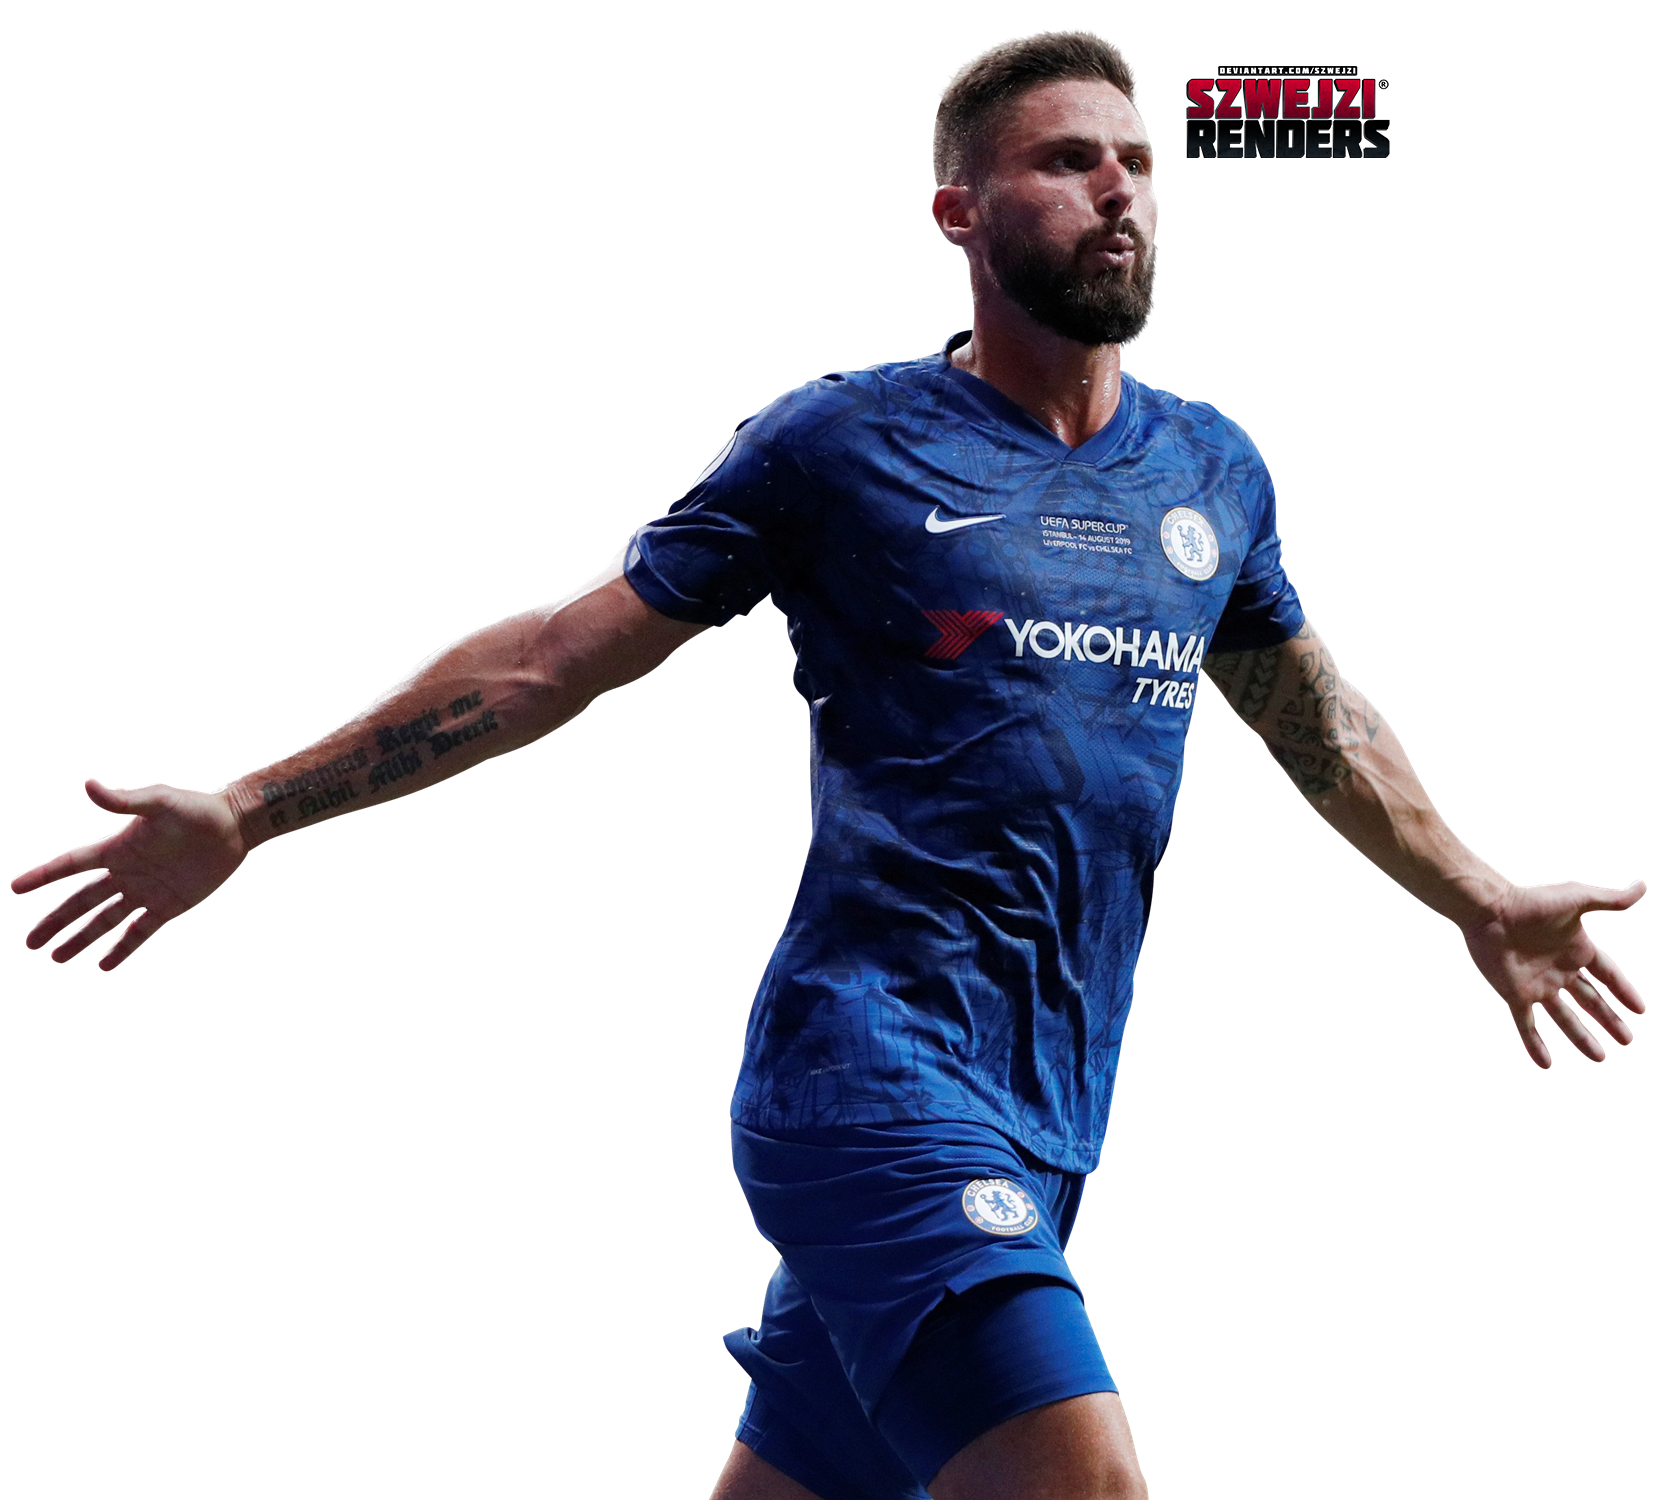 Olivier Giroud By Szwejzi On Deviantart 2174990 Png Images Pngio